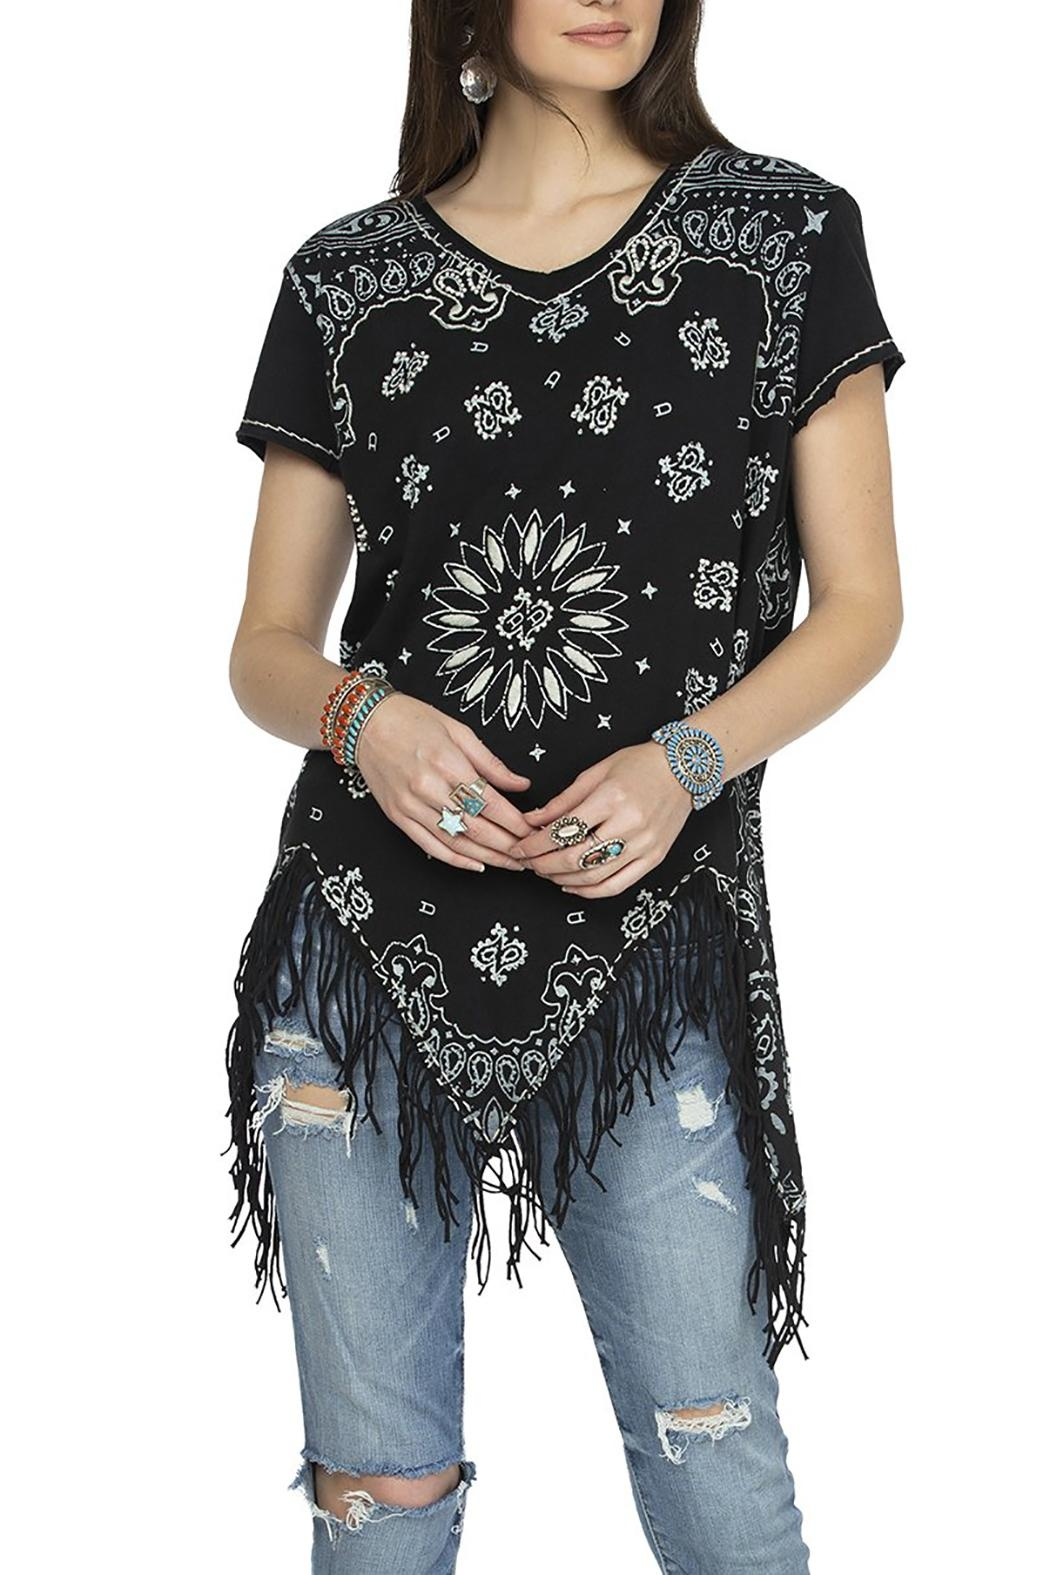 Double D Ranchwear July Bandana Top - Front Cropped Image